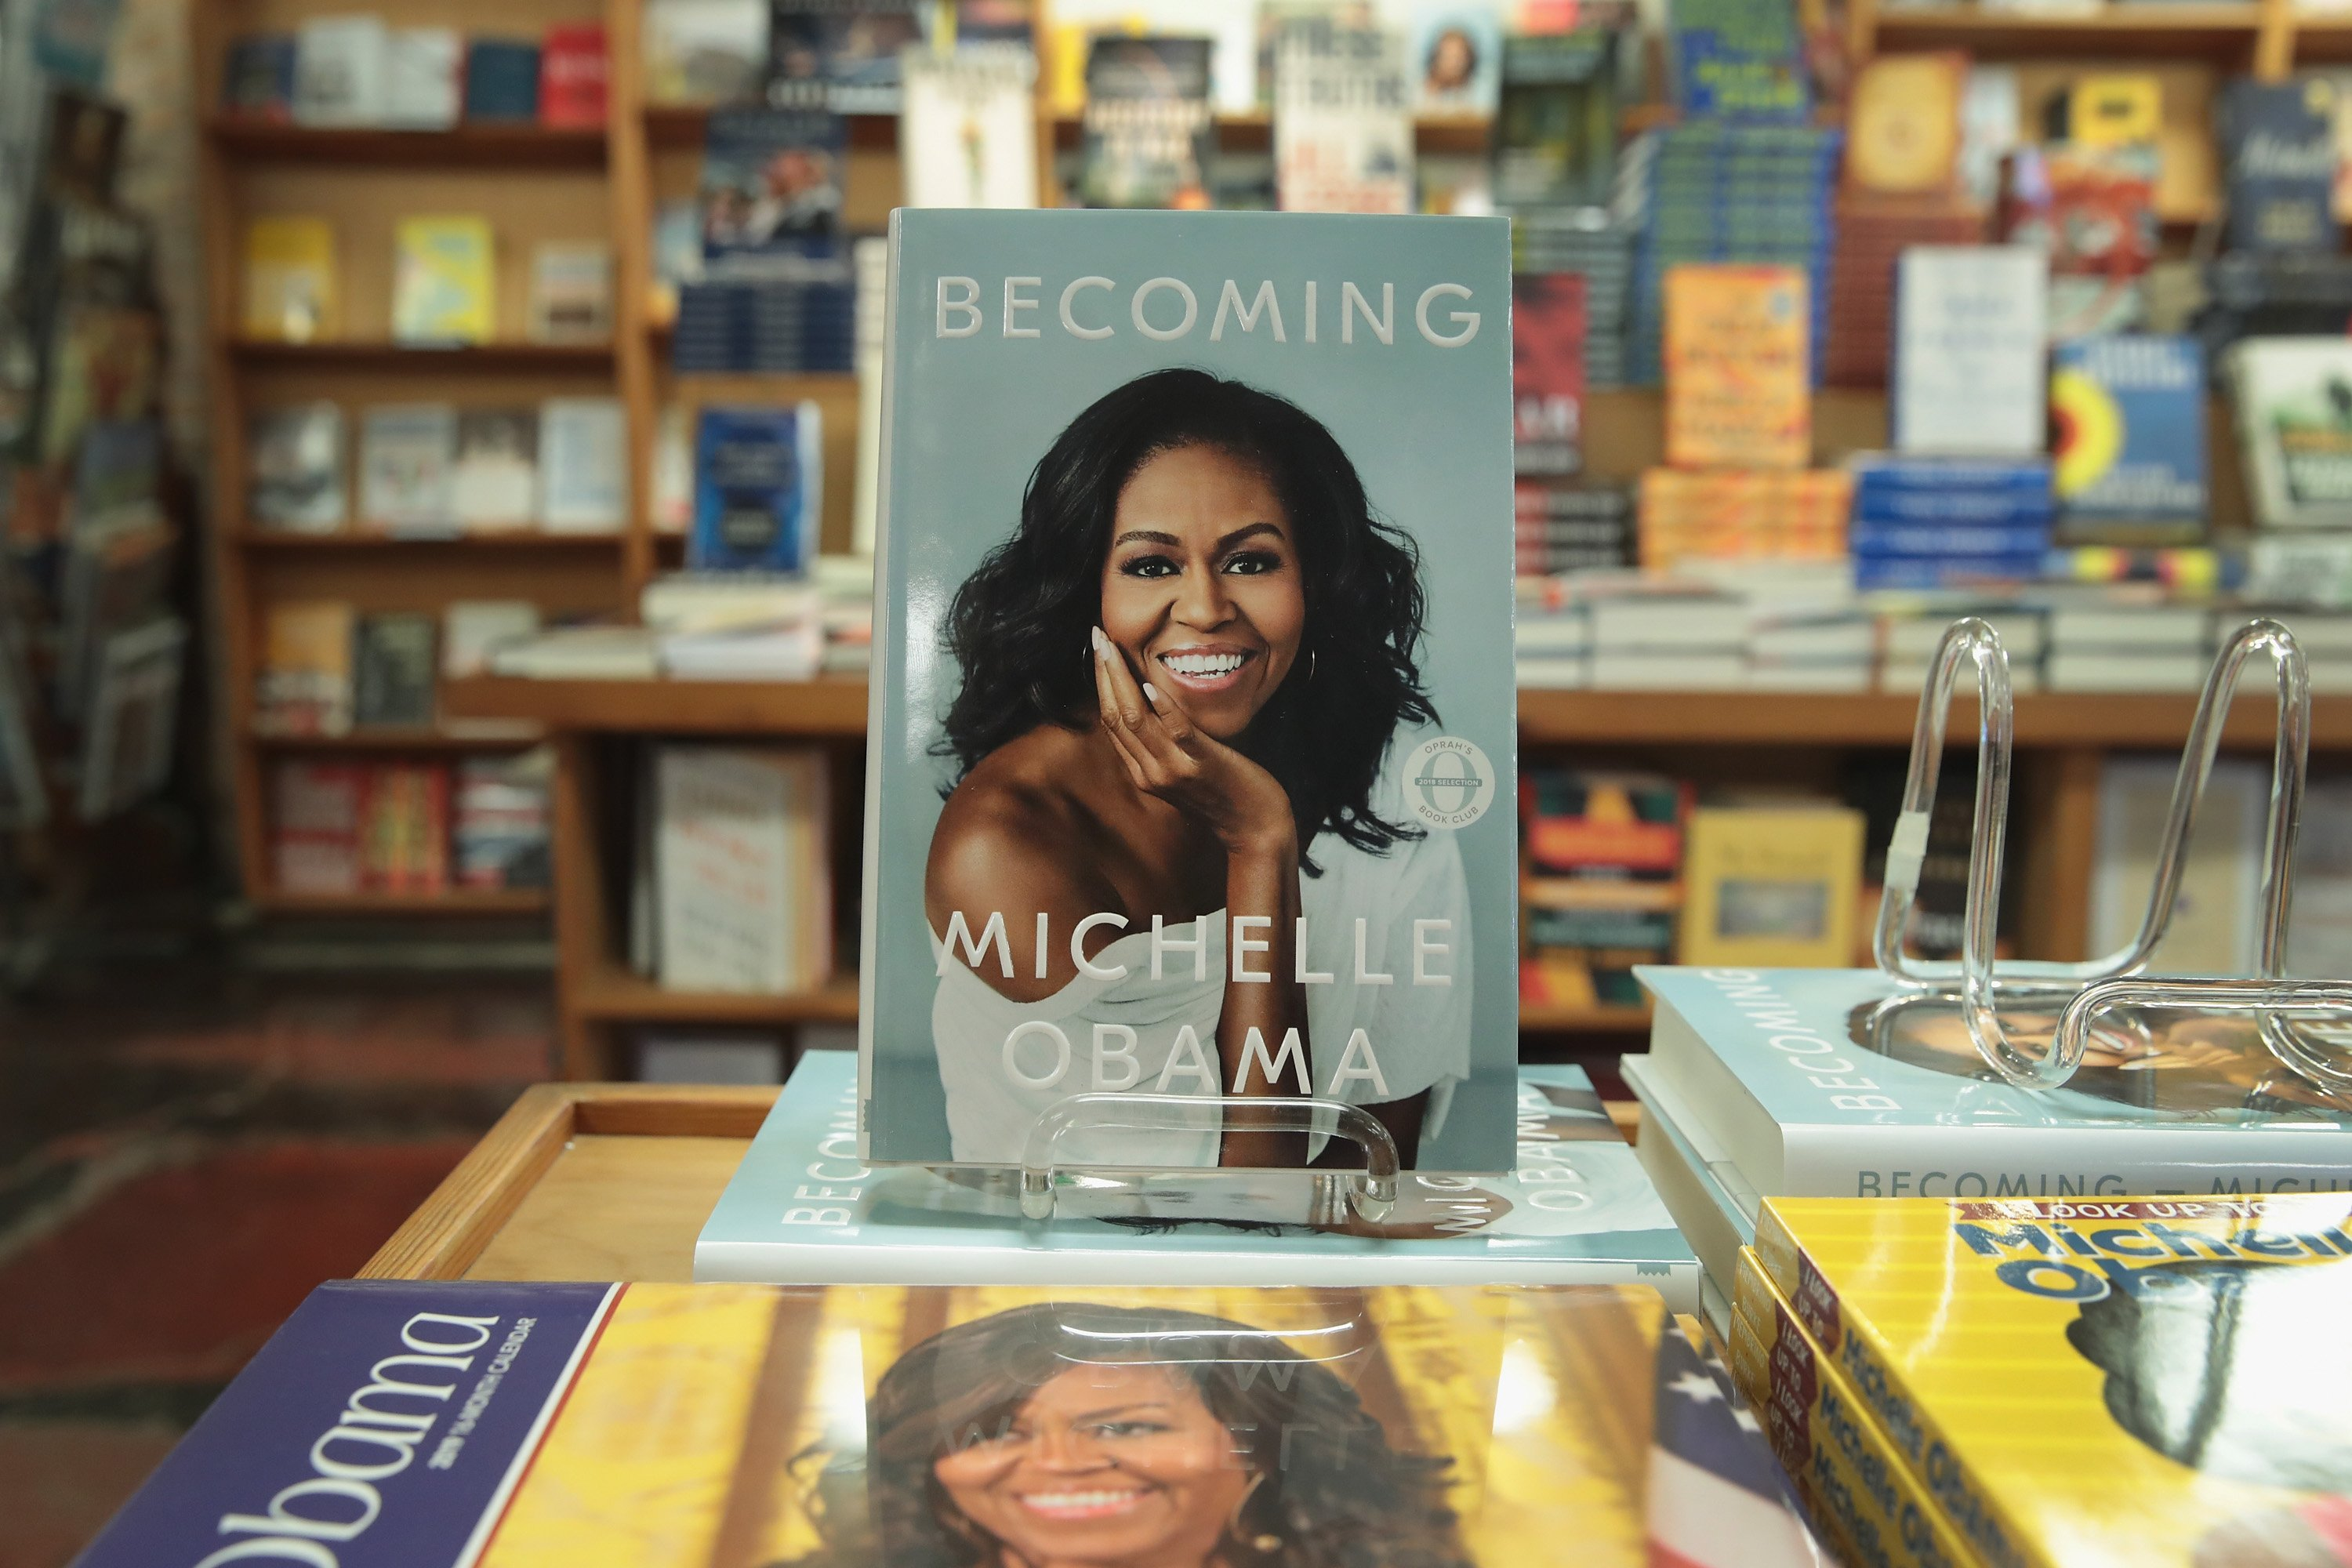 """"""" Becoming"""", a book by former first lady Michelle Obama, is displayed at the 57th Street Books bookstore on November 13, 2018, in Chicago, Illinois. 